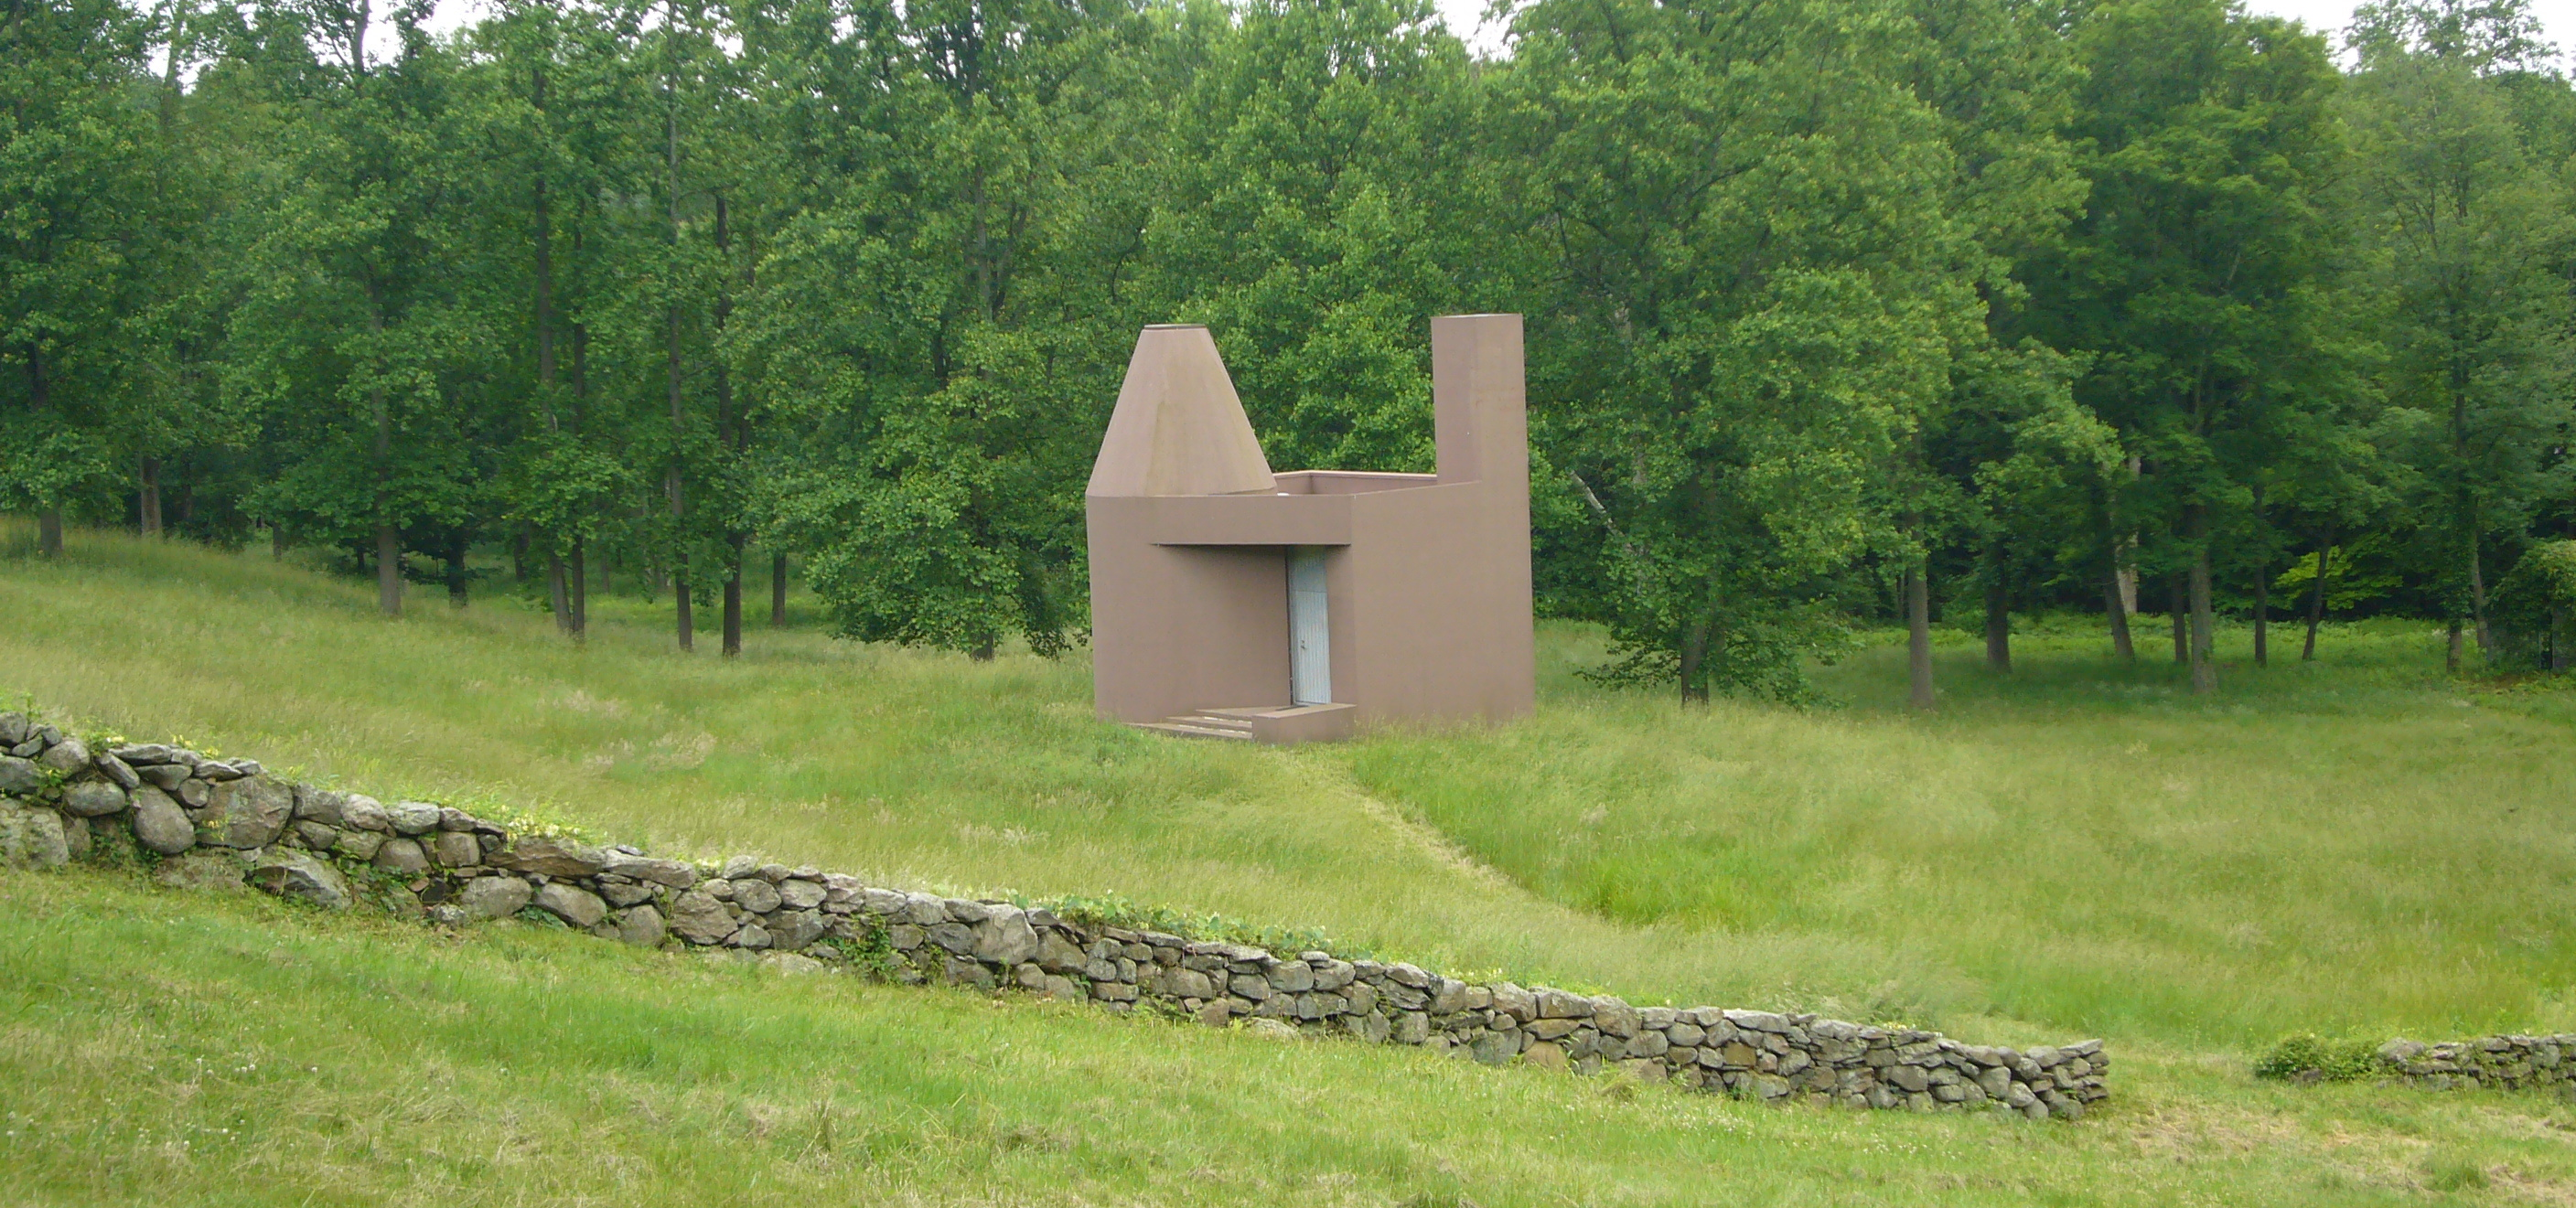 Philip Johnson Glass House file thestudy philip johnson glass house jpg wikimedia commons